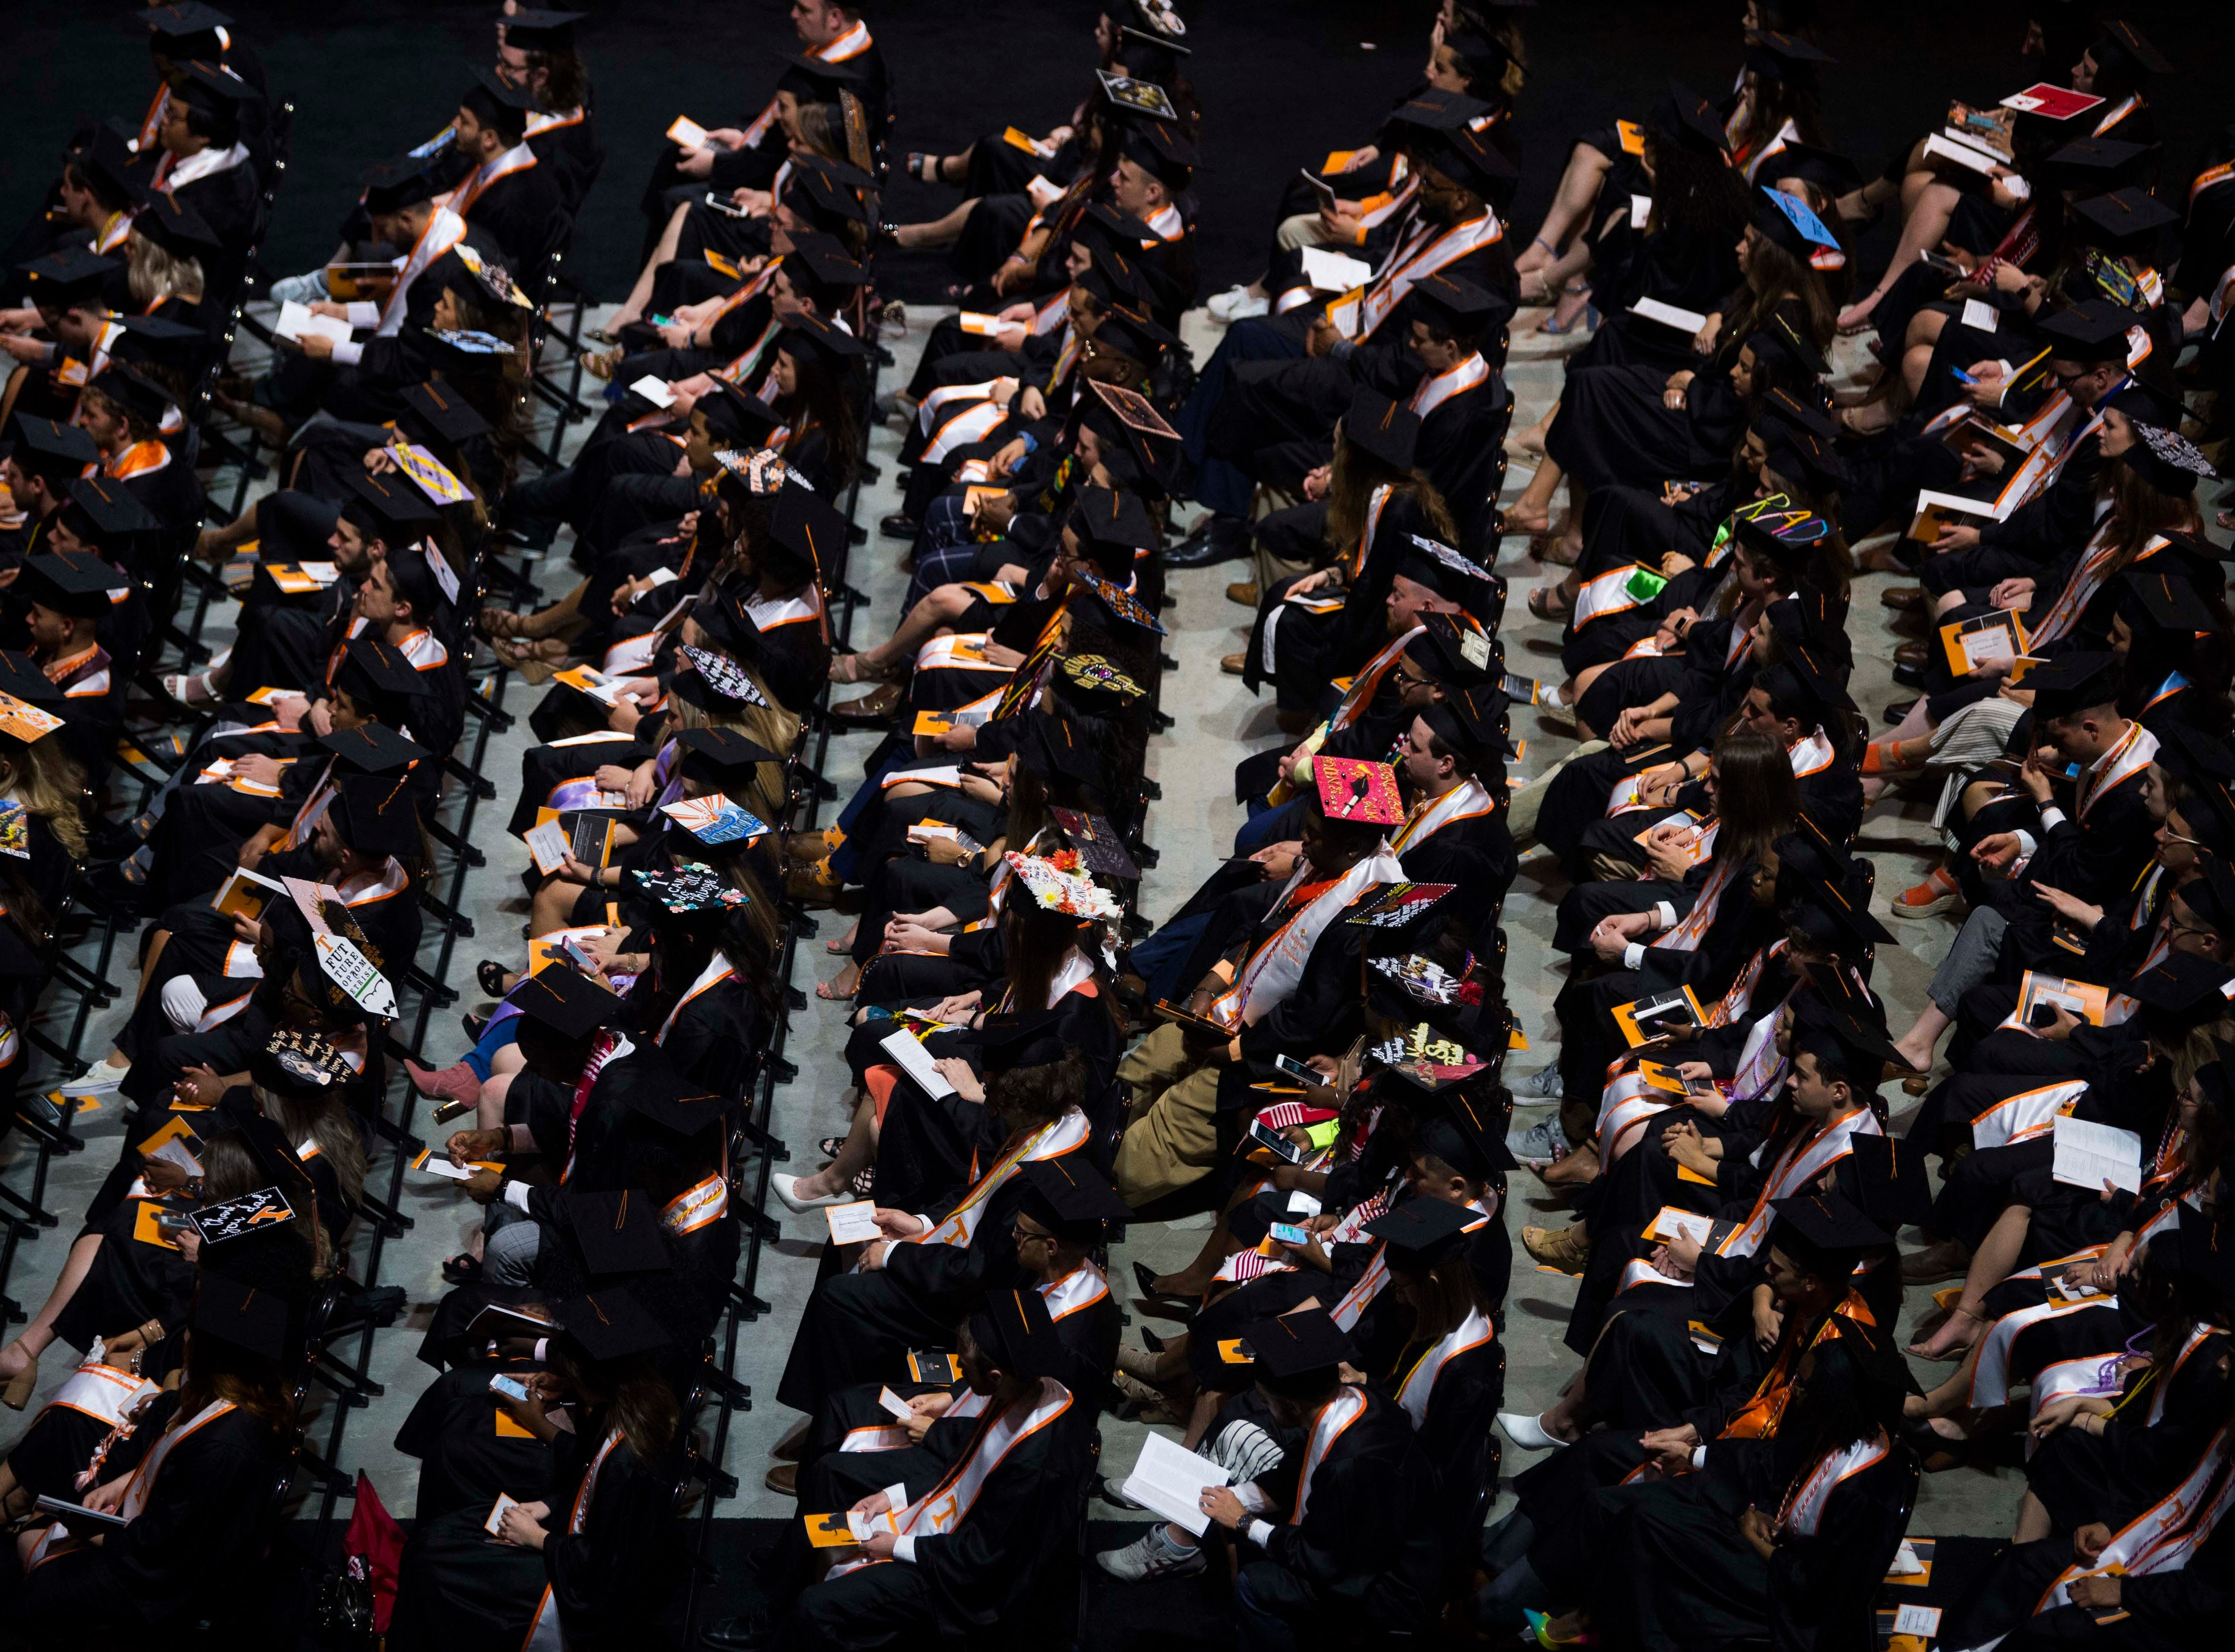 Students are seen during University of Tennessee's College of Arts and Sciences commencement in Thompson-Boling arena in Knoxville, Saturday, May 11, 2019.